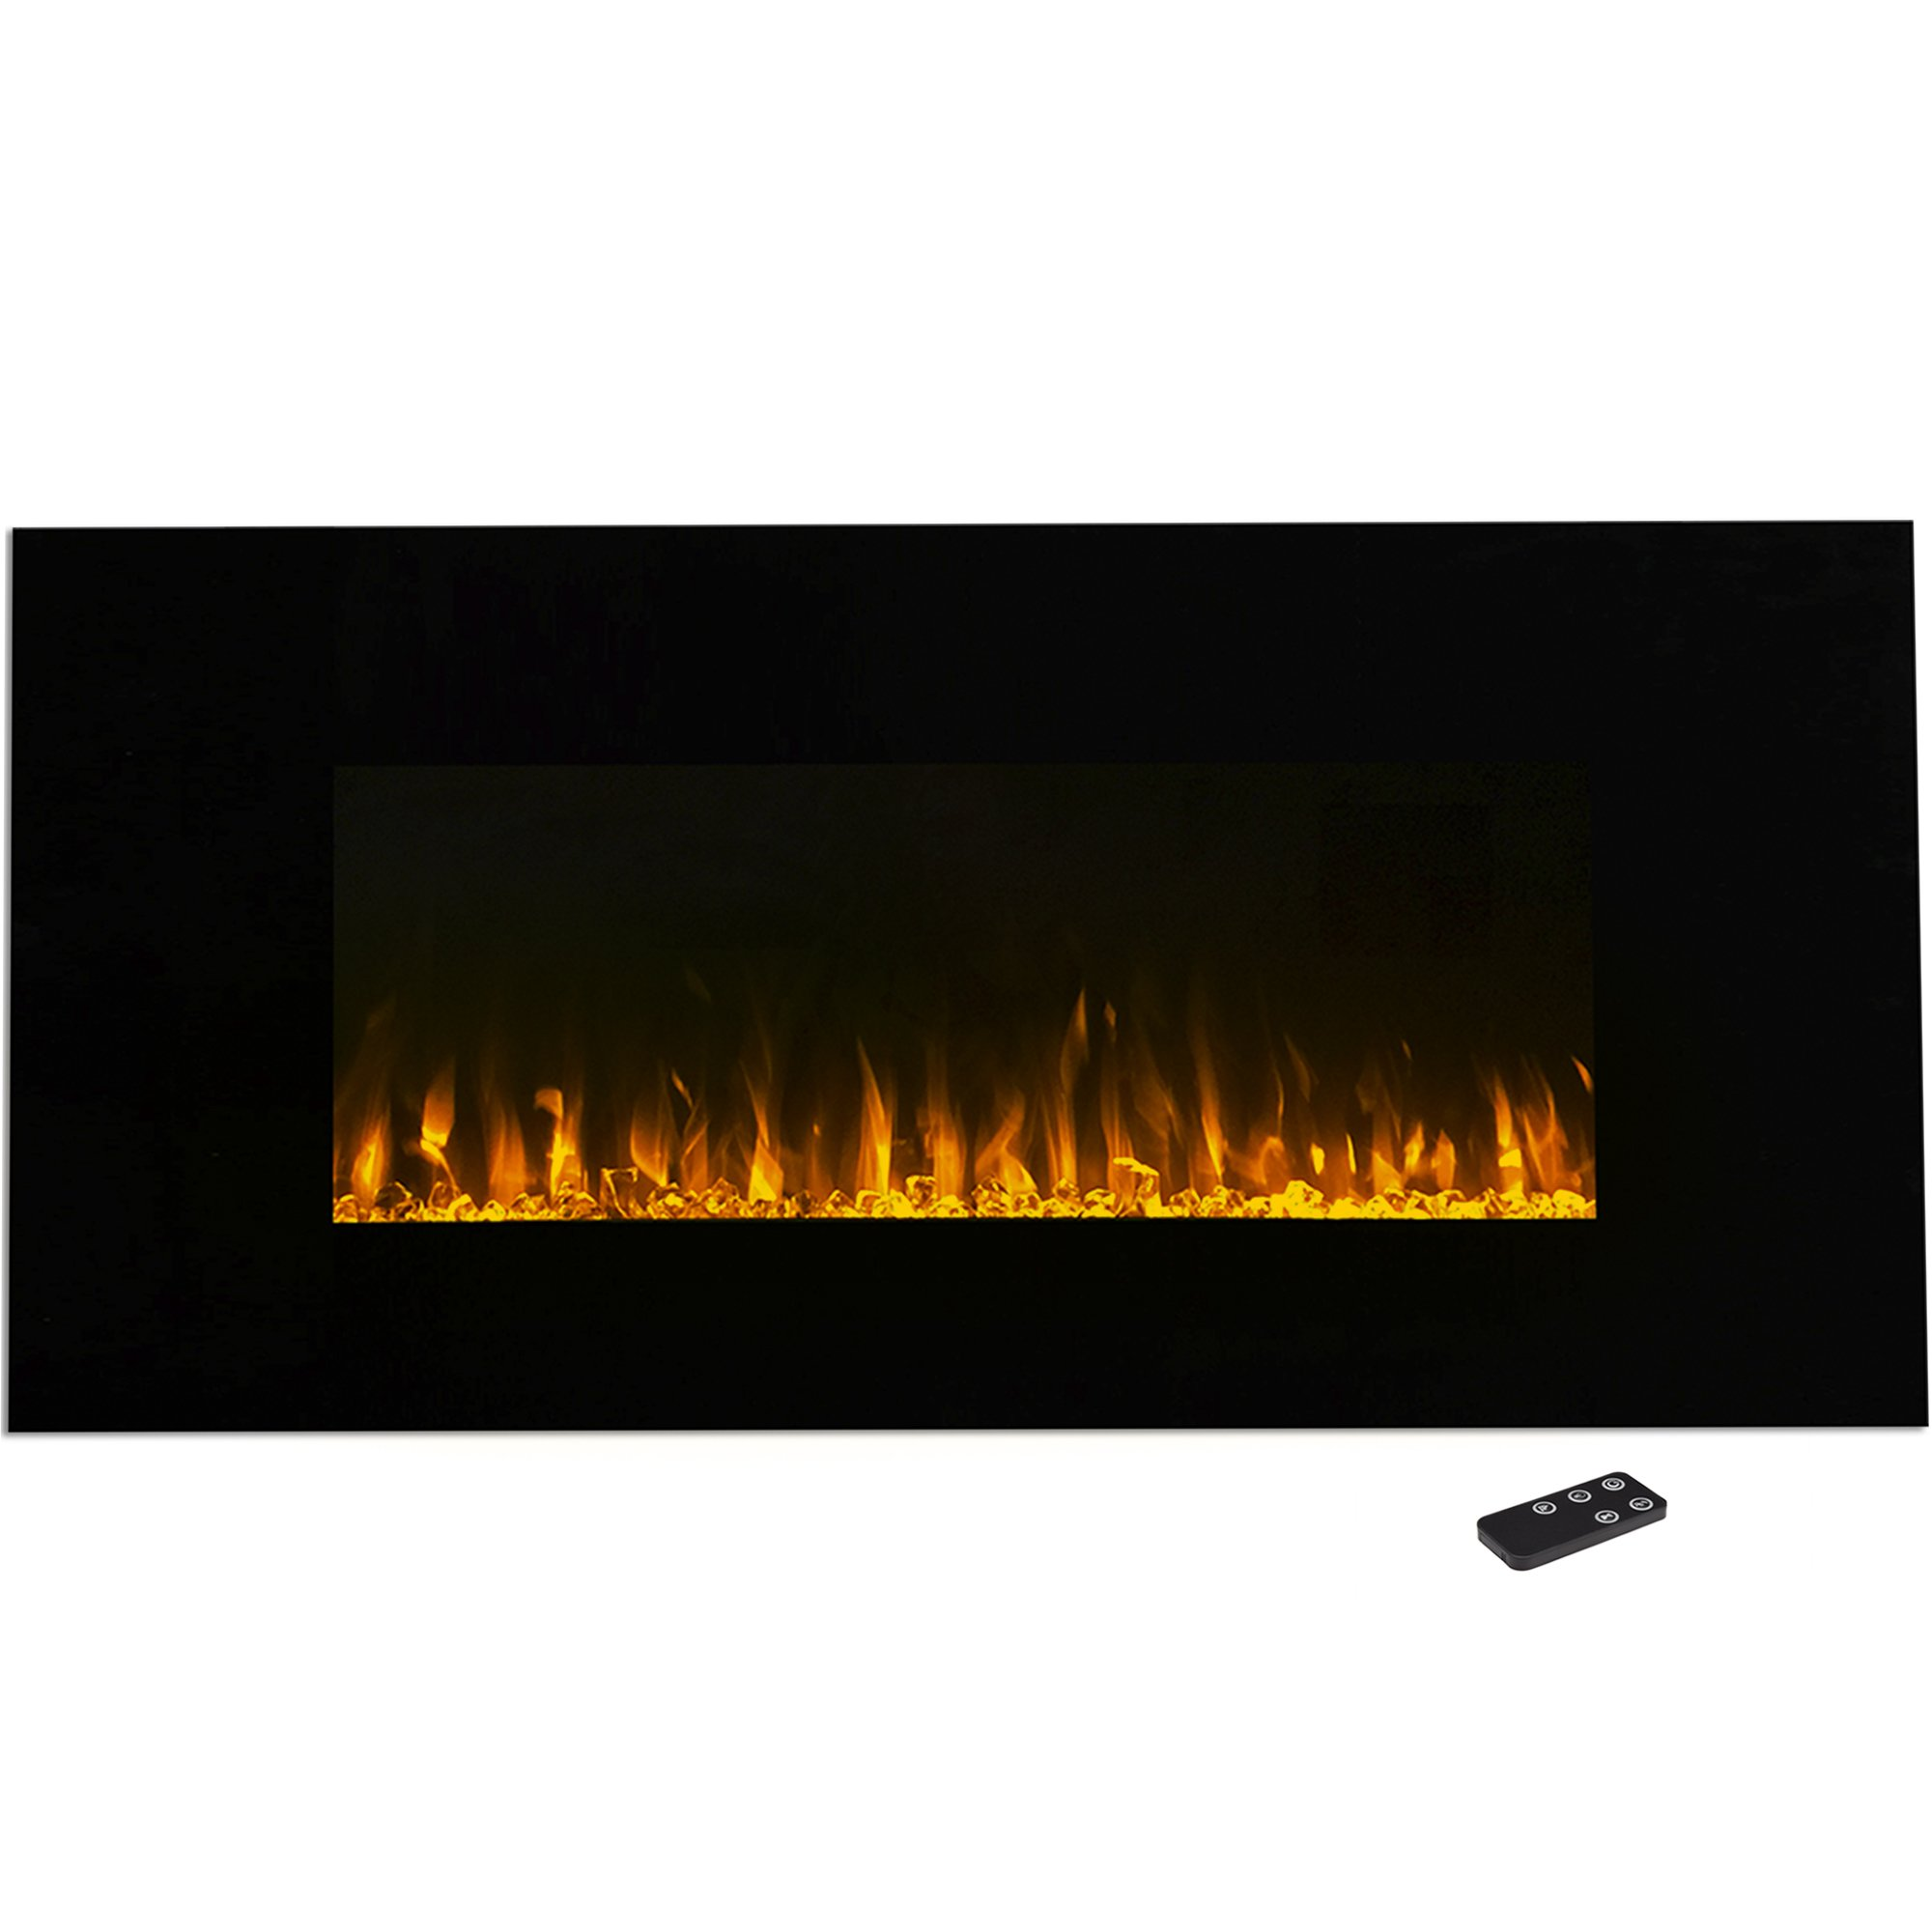 Electric Fireplace Wall Mounted, LED Fire and Ice Flame, With Remote 42 inch by Northwest by Northwest (Image #1)